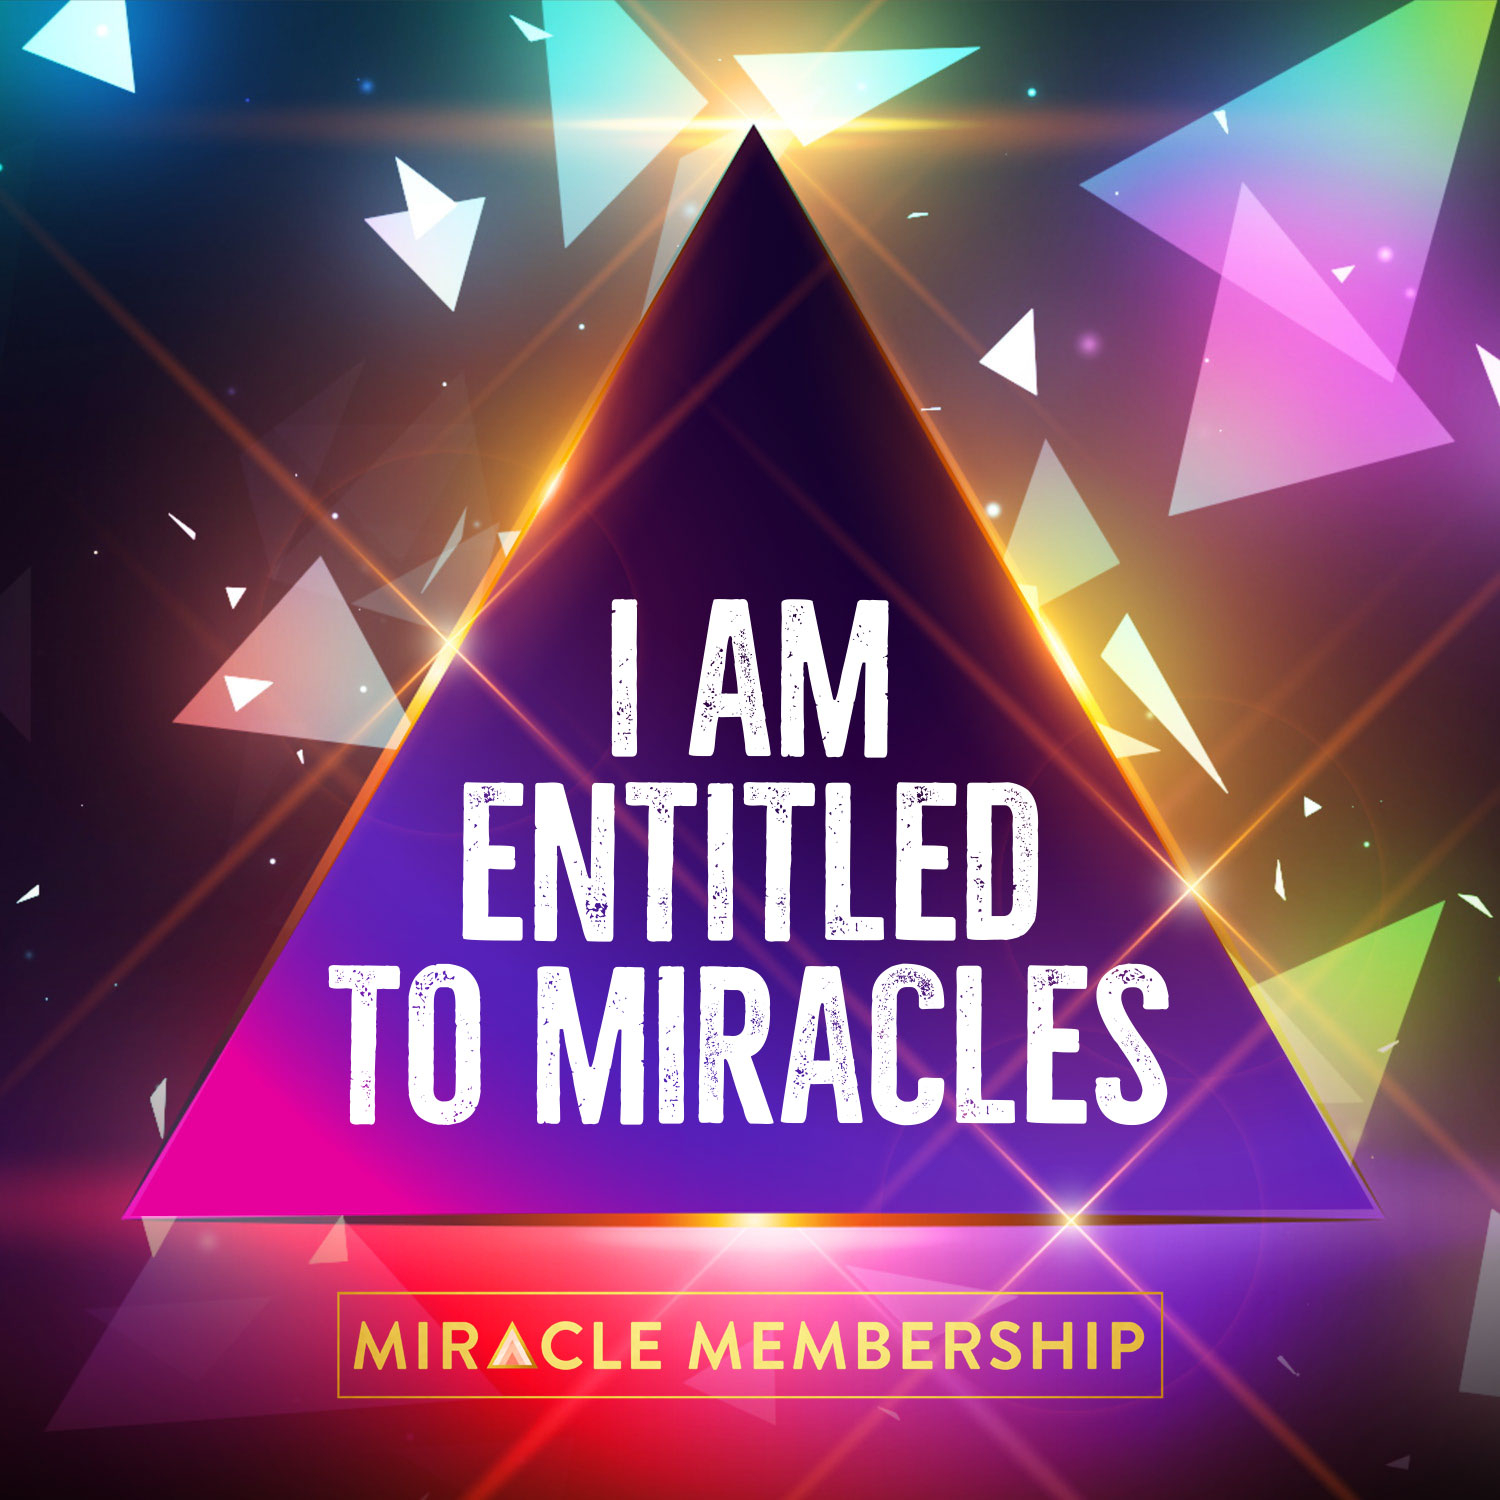 I am entitled to miracles | Gabby Bernstein's Miracle Membership mantra for October 2018